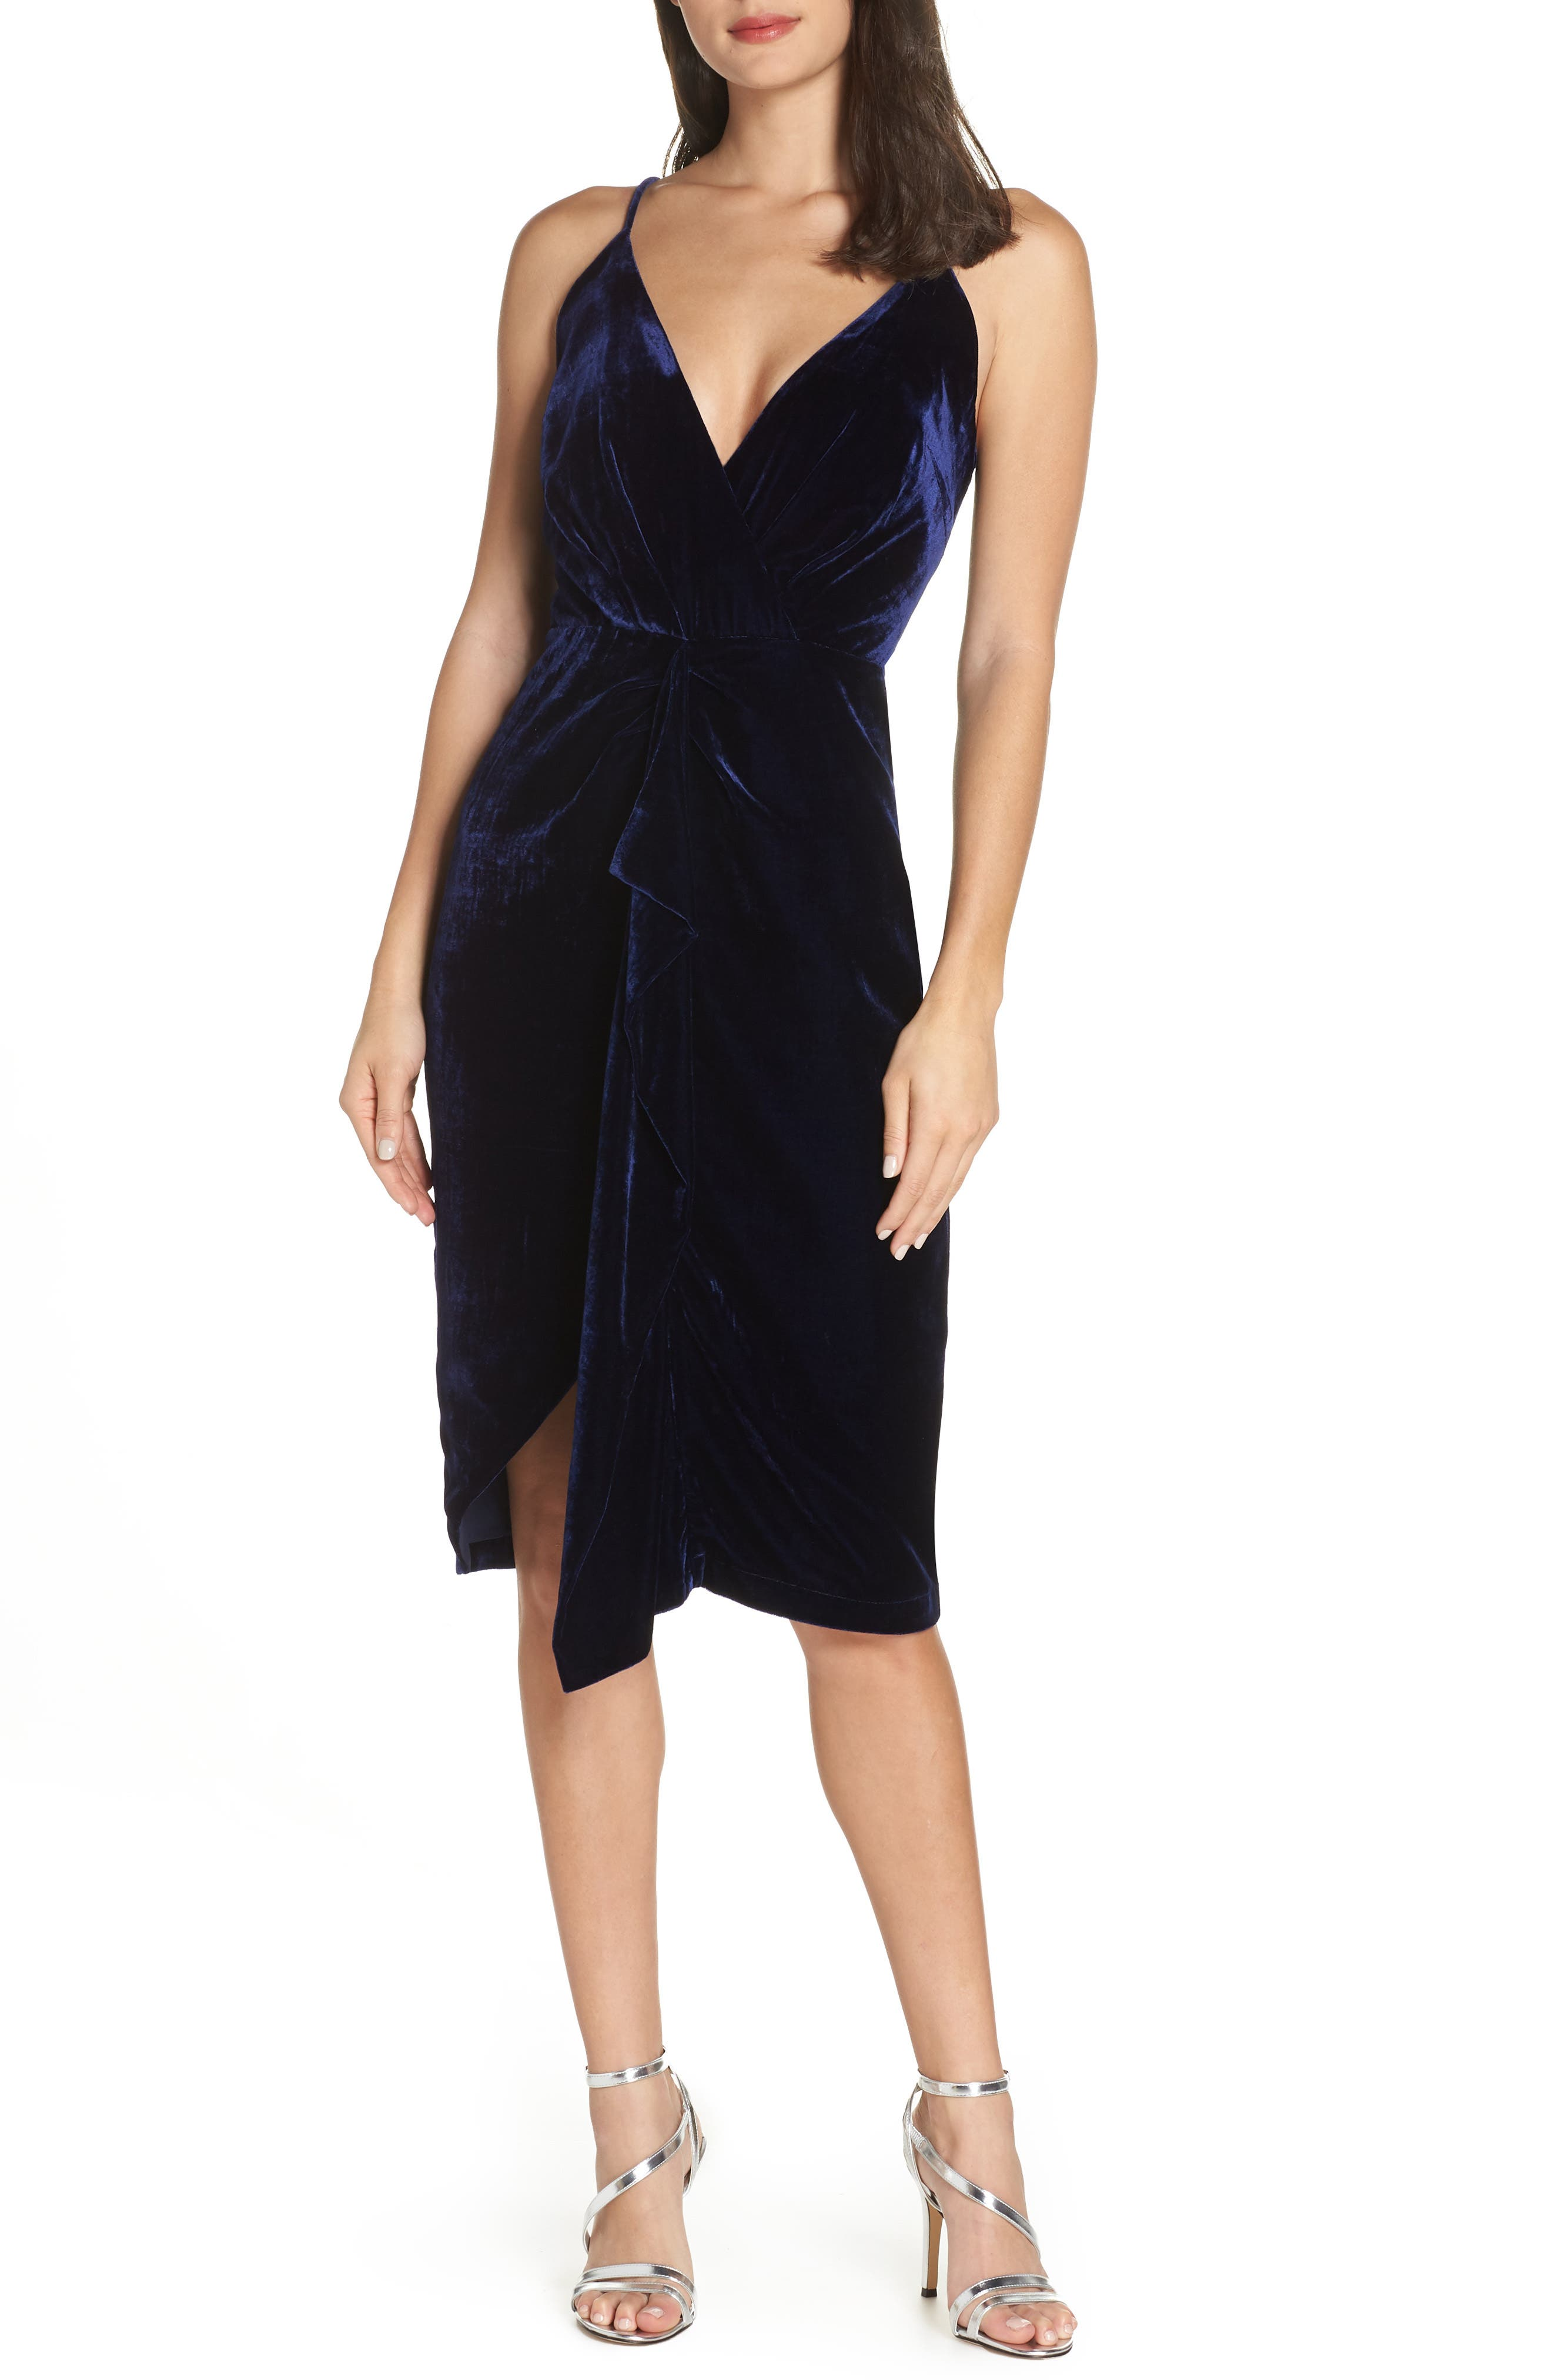 HARLYN Drape Midi Dress in Midnight Blue